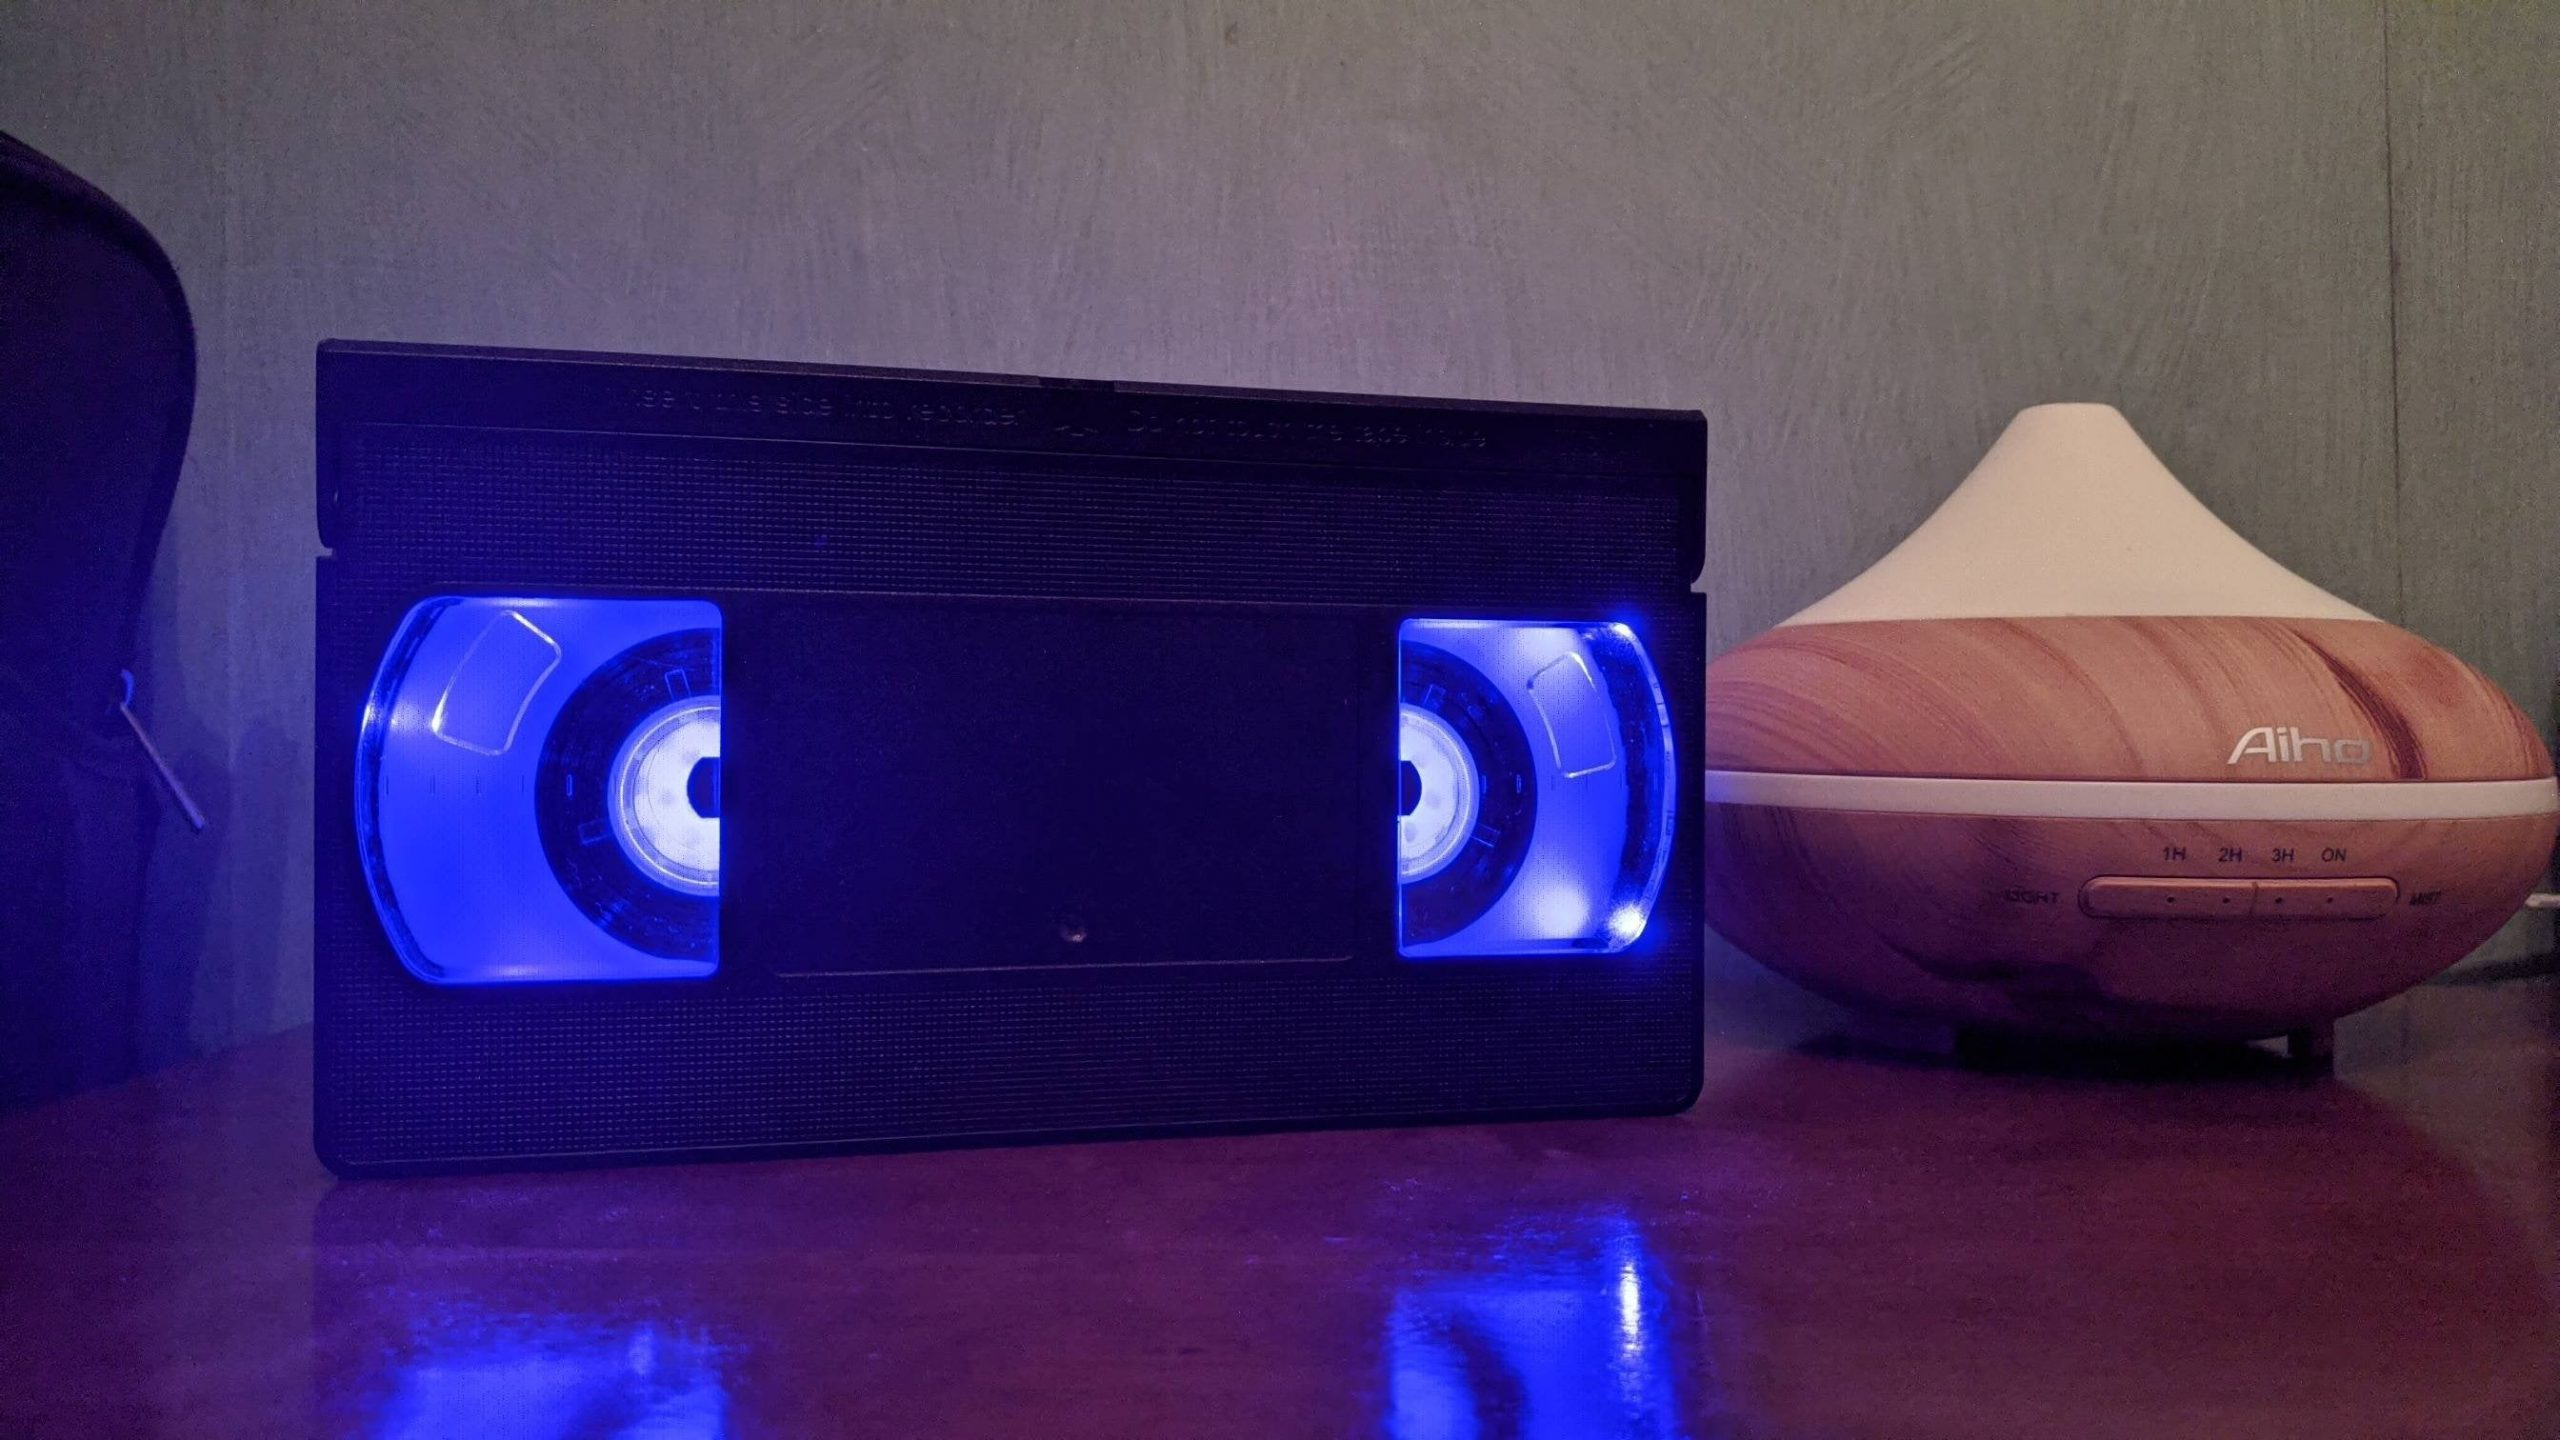 yLL2vdeQWw zoX StqHXEWL 55OPChru7VPYqRITghk scaled - Upcycled an old VHS with some LED lights - hobbies, crafts